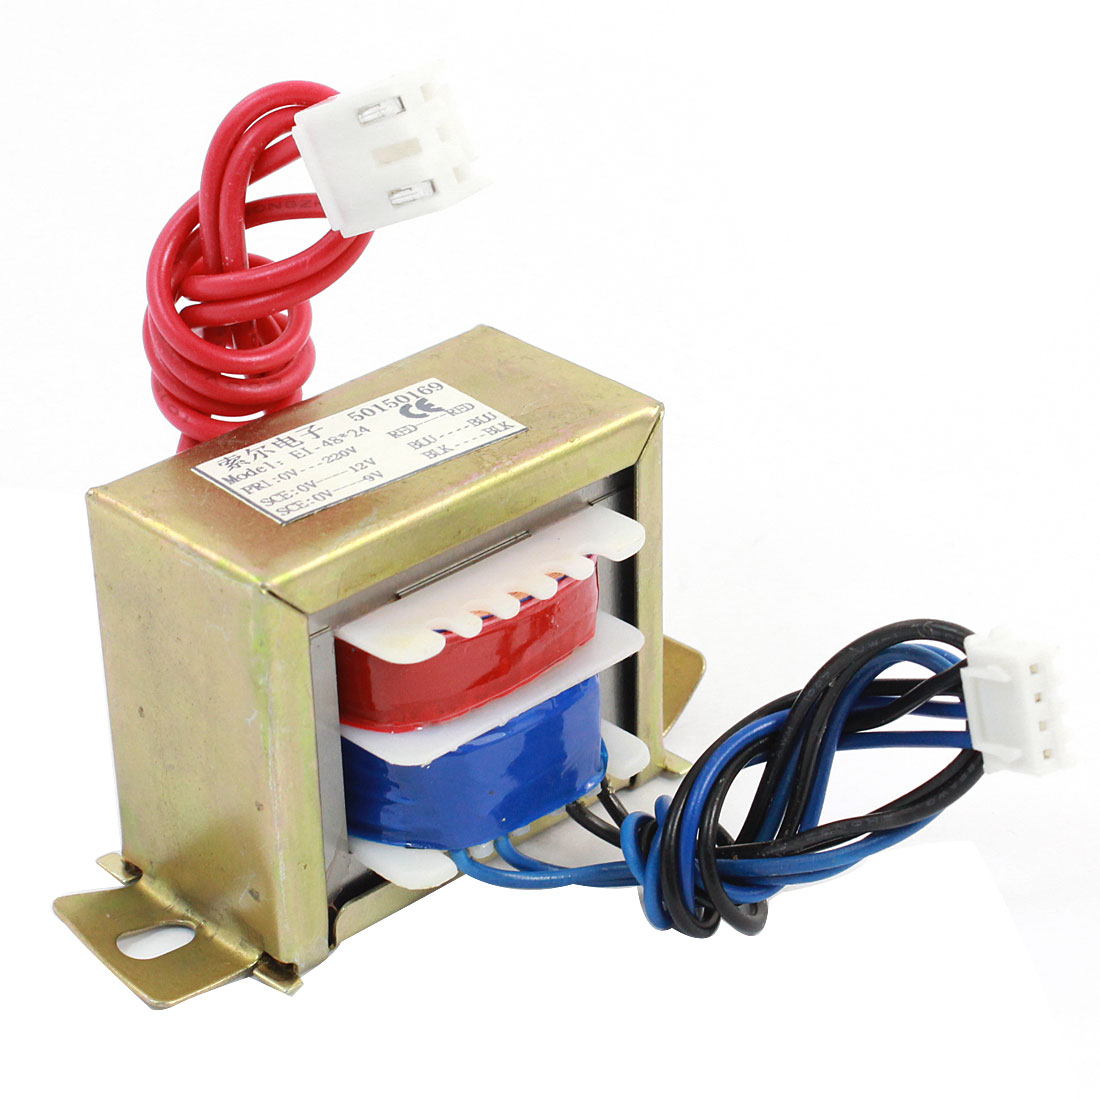 AC 220V Input AC 12V 9V Dual Output Electric Power Transformer